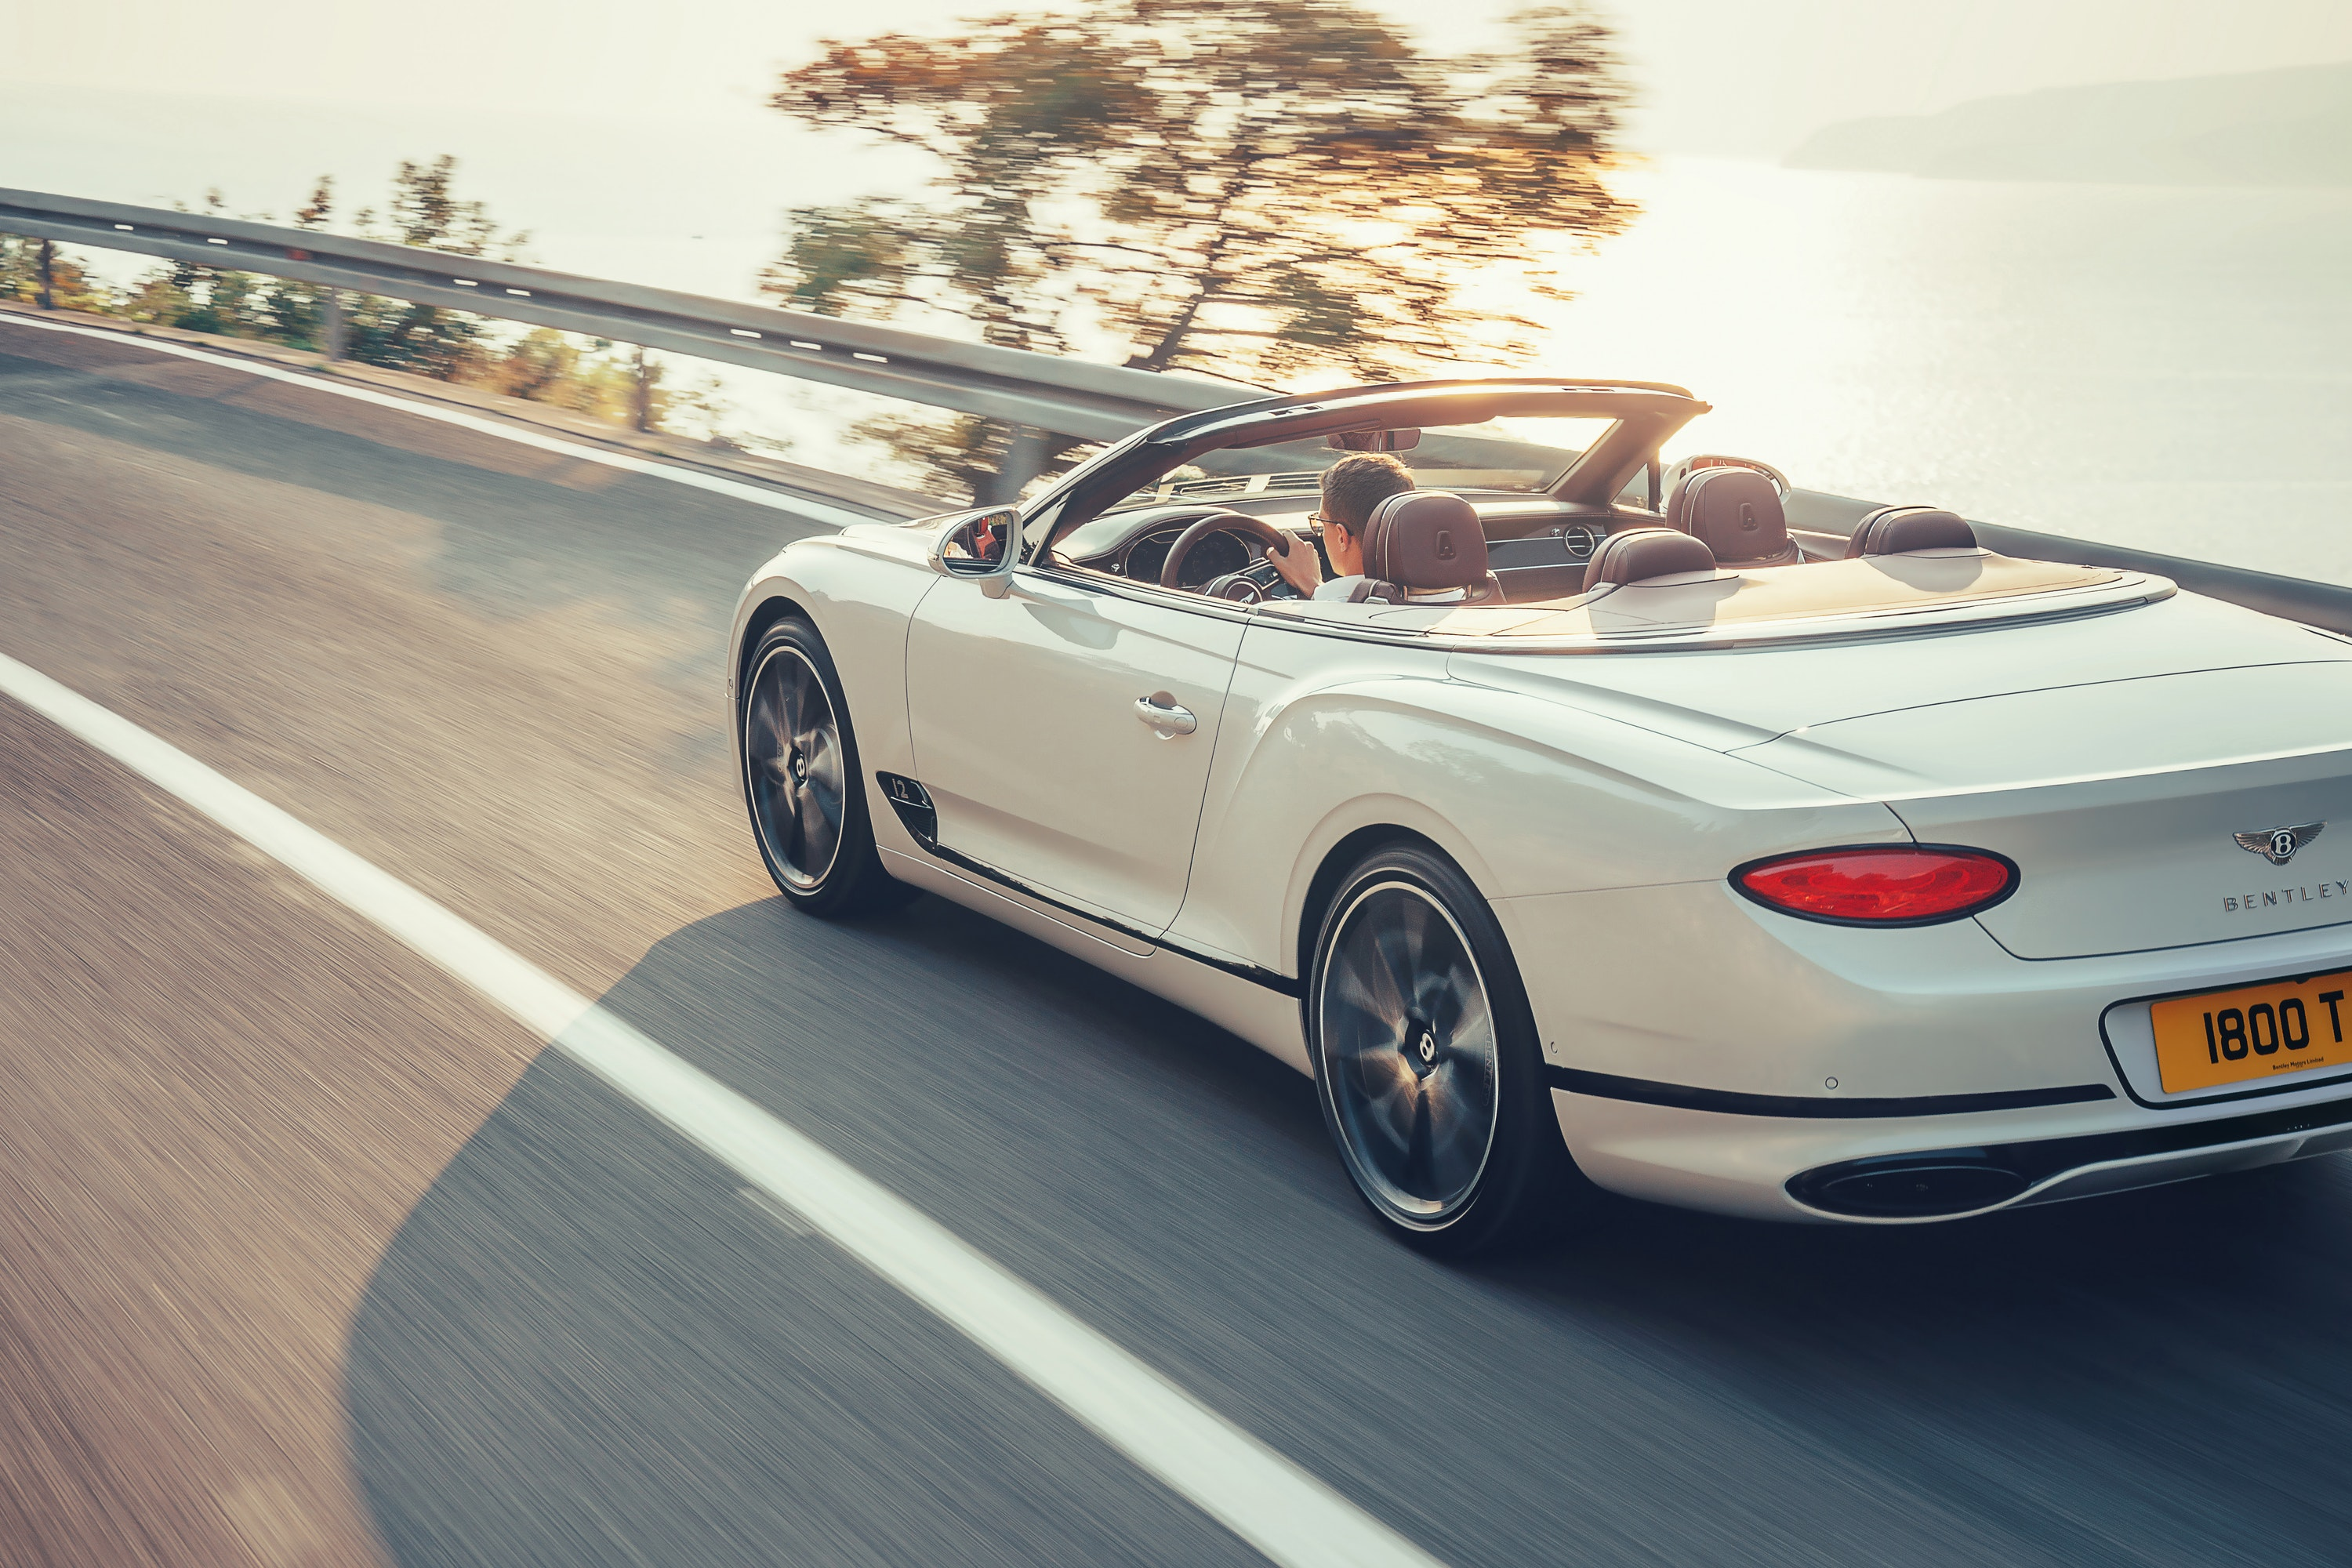 Bentley Continental GT Convertible driving with the roof down